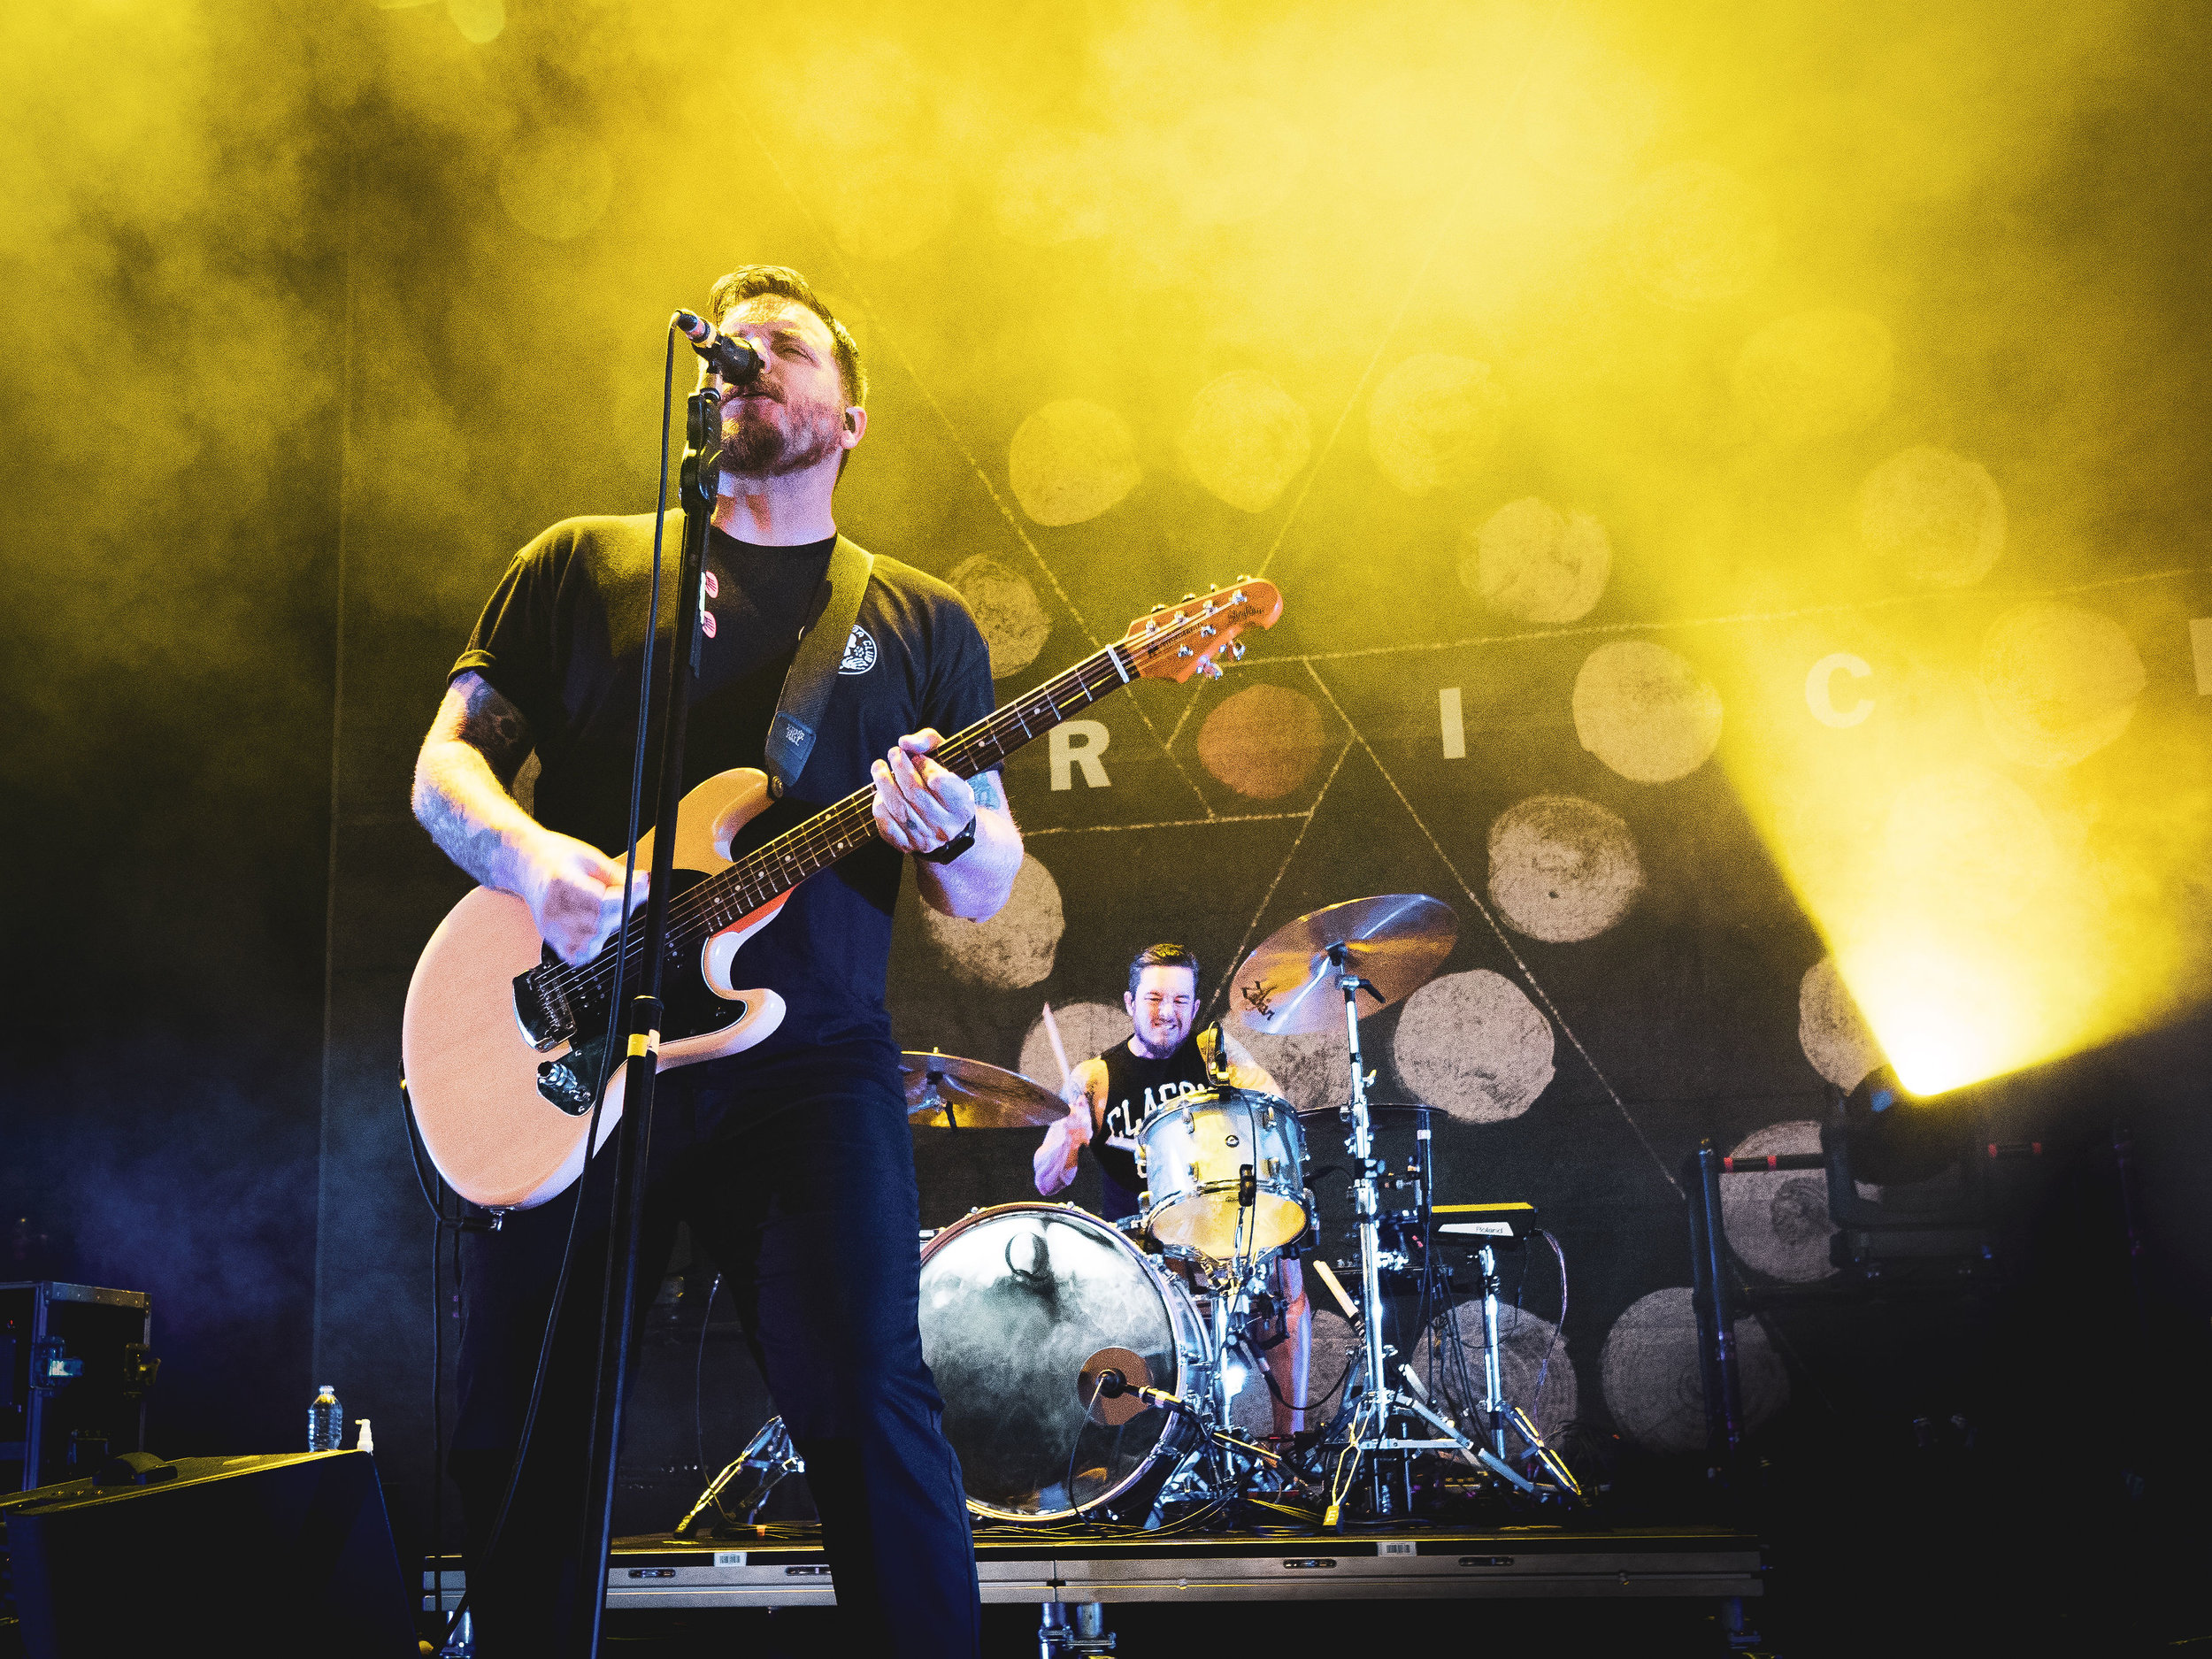 Thrice     //   Rockstar Energy DISRUPT Festival   // 2019-07-10 //   DTE Energy Music Theatre    -  Clarkston, MI // Photos by  Brooke Elizabeth